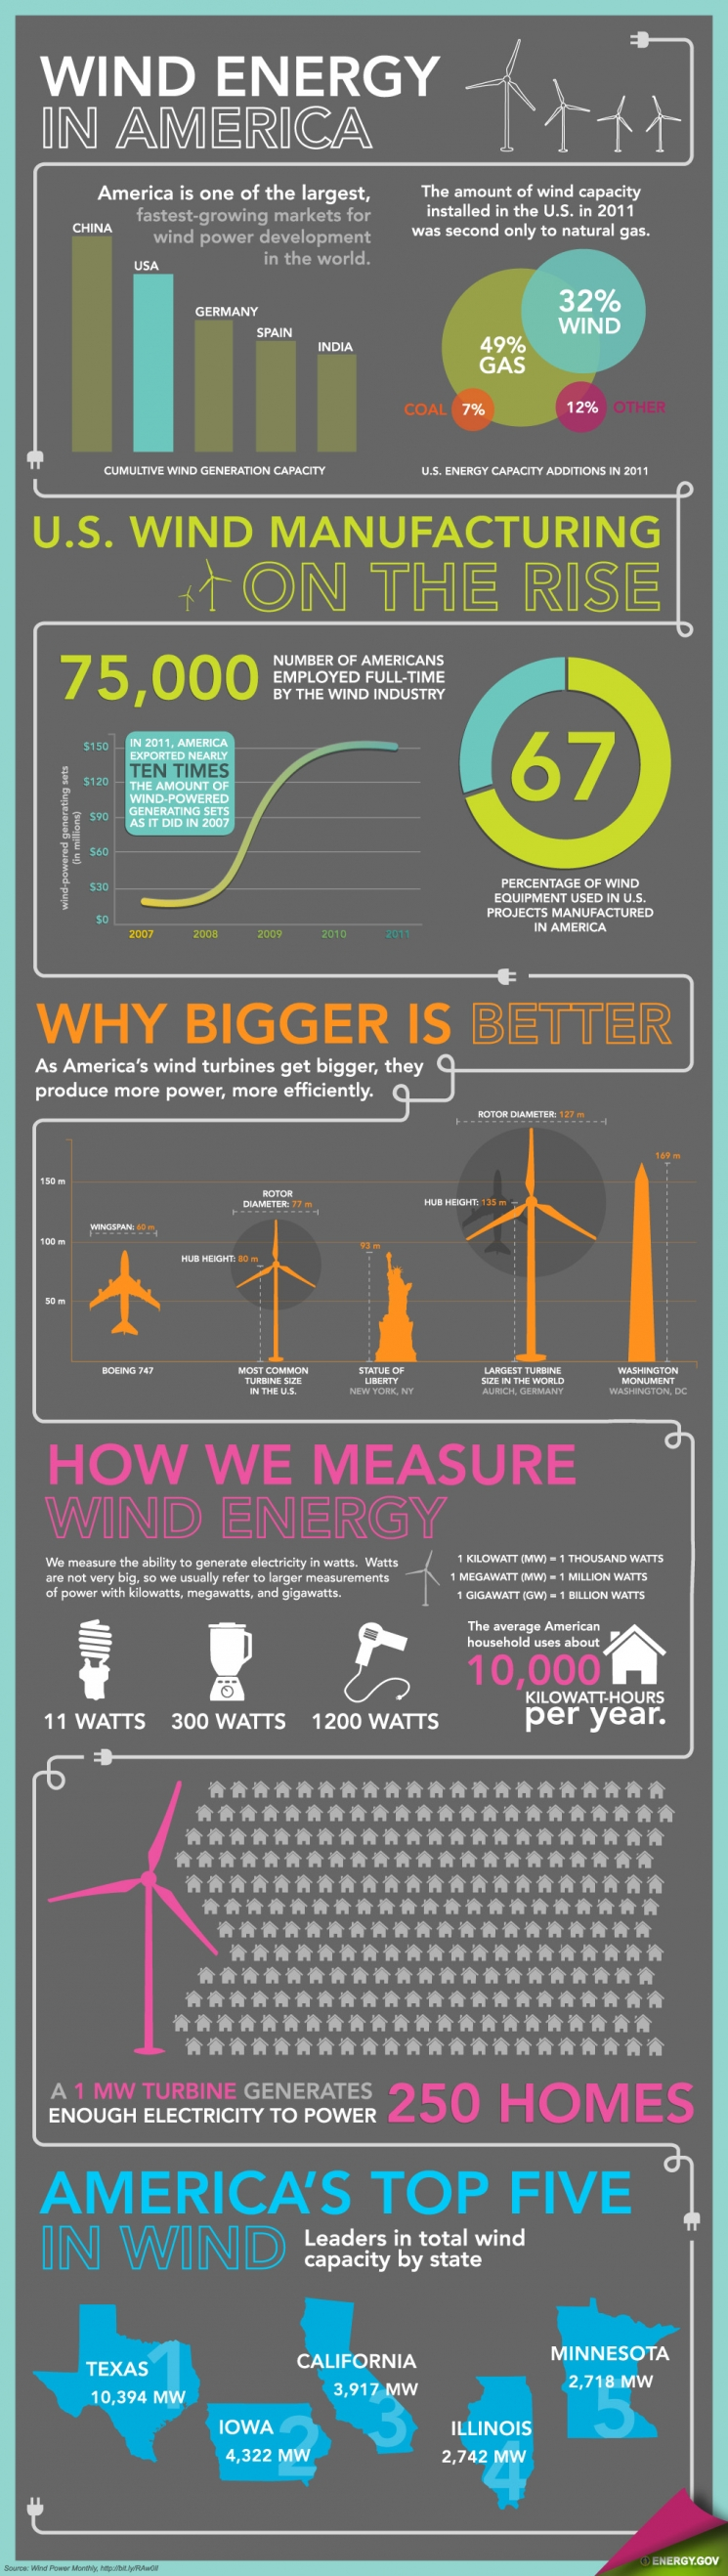 "This infographic details key findings from the Energy Department's <a href=""http://www1.eere.energy.gov/wind/resources.html"">2011 Wind Technologies Market Report </a> -- which underscores the dramatic growth of the U.S. wind industry. 